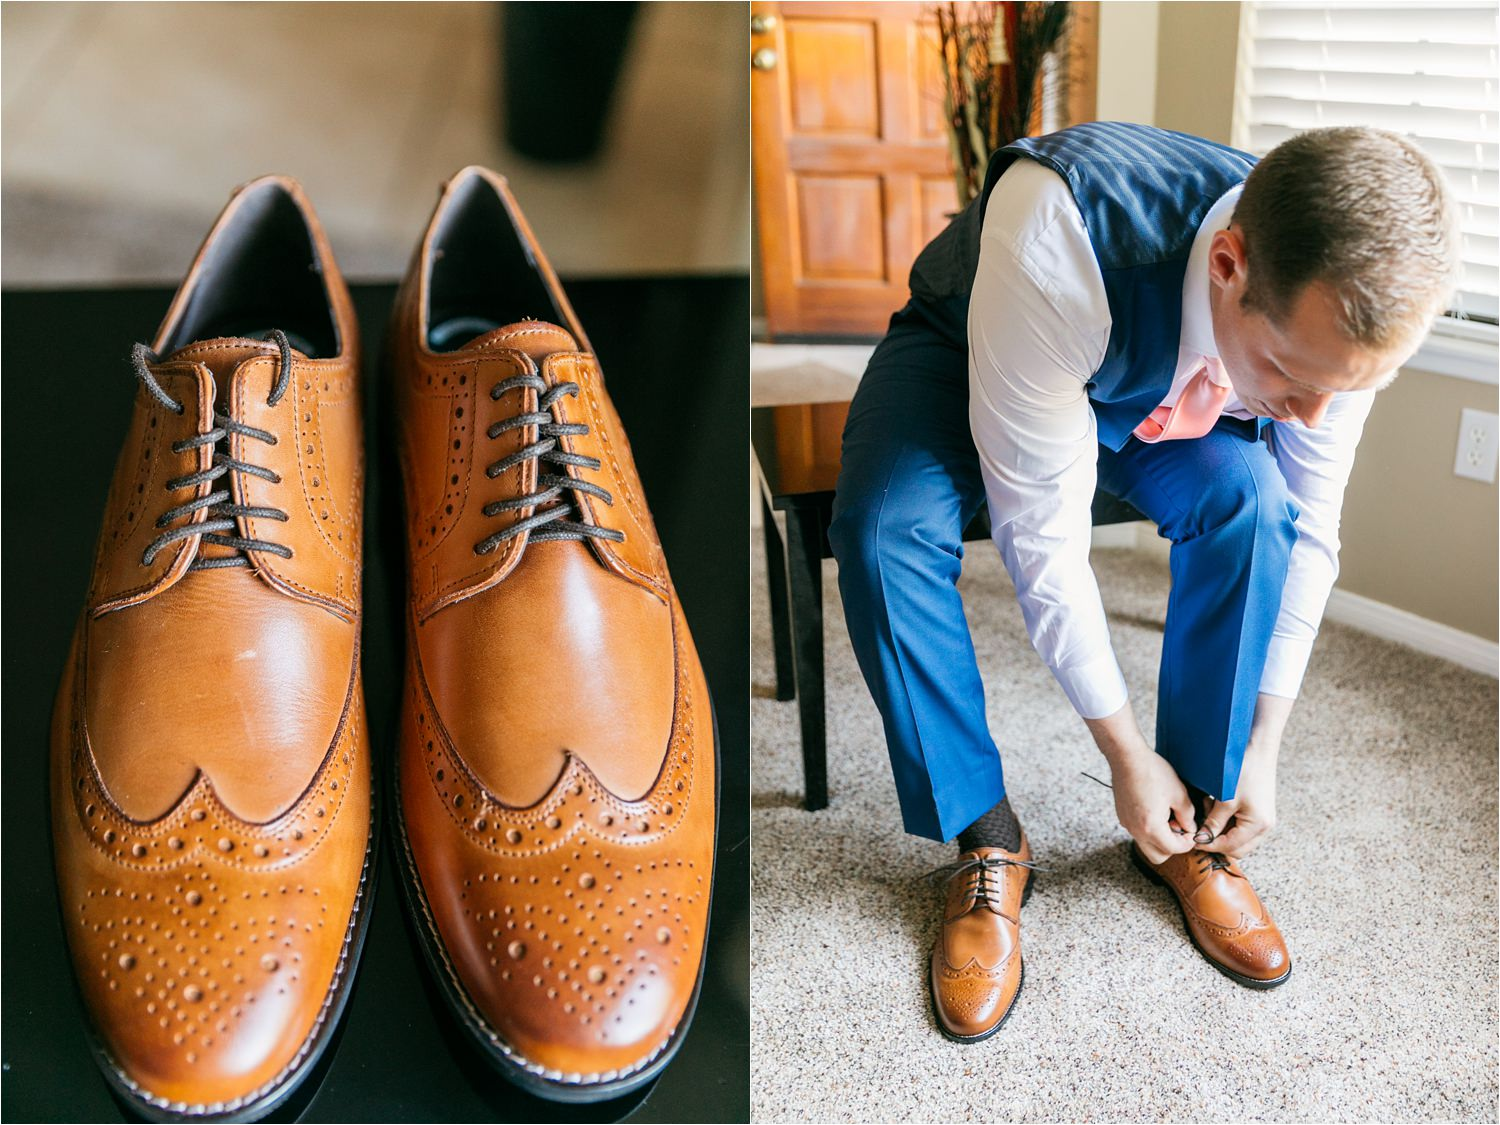 Groom putting on shoes - Chino Hills Wedding Photographer - https://brittneyhannonphotography.com